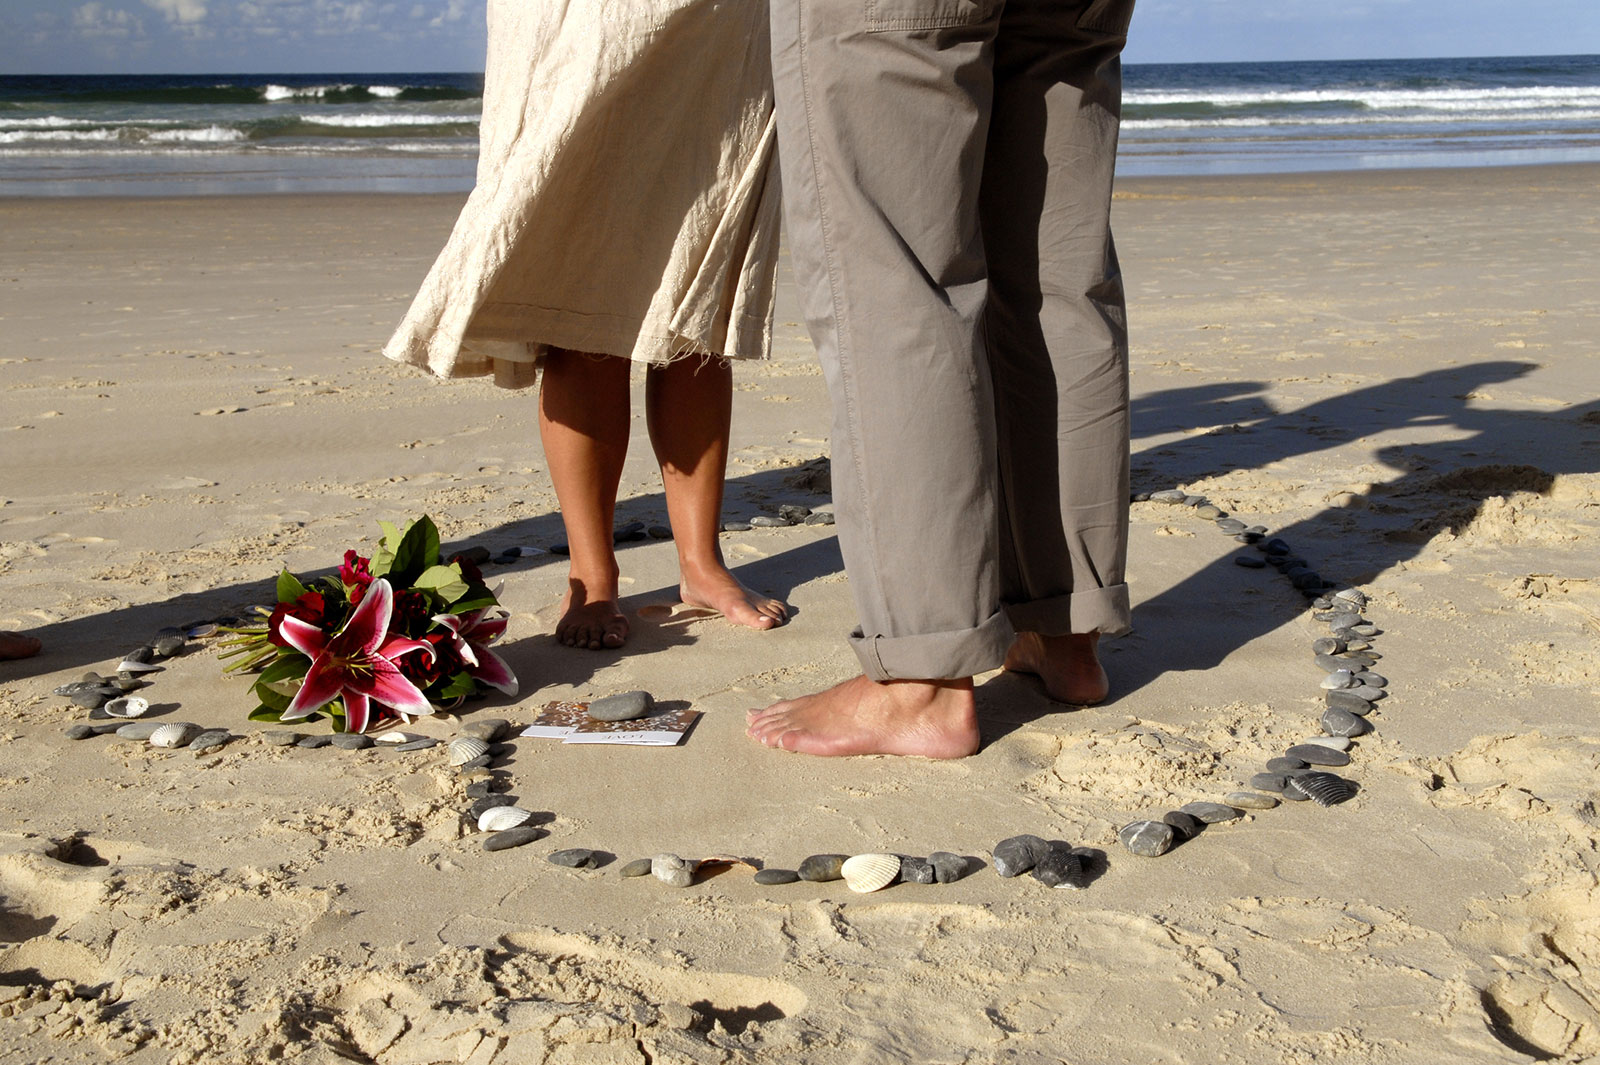 ceremonia-de-boda-en-la-playa.jpg